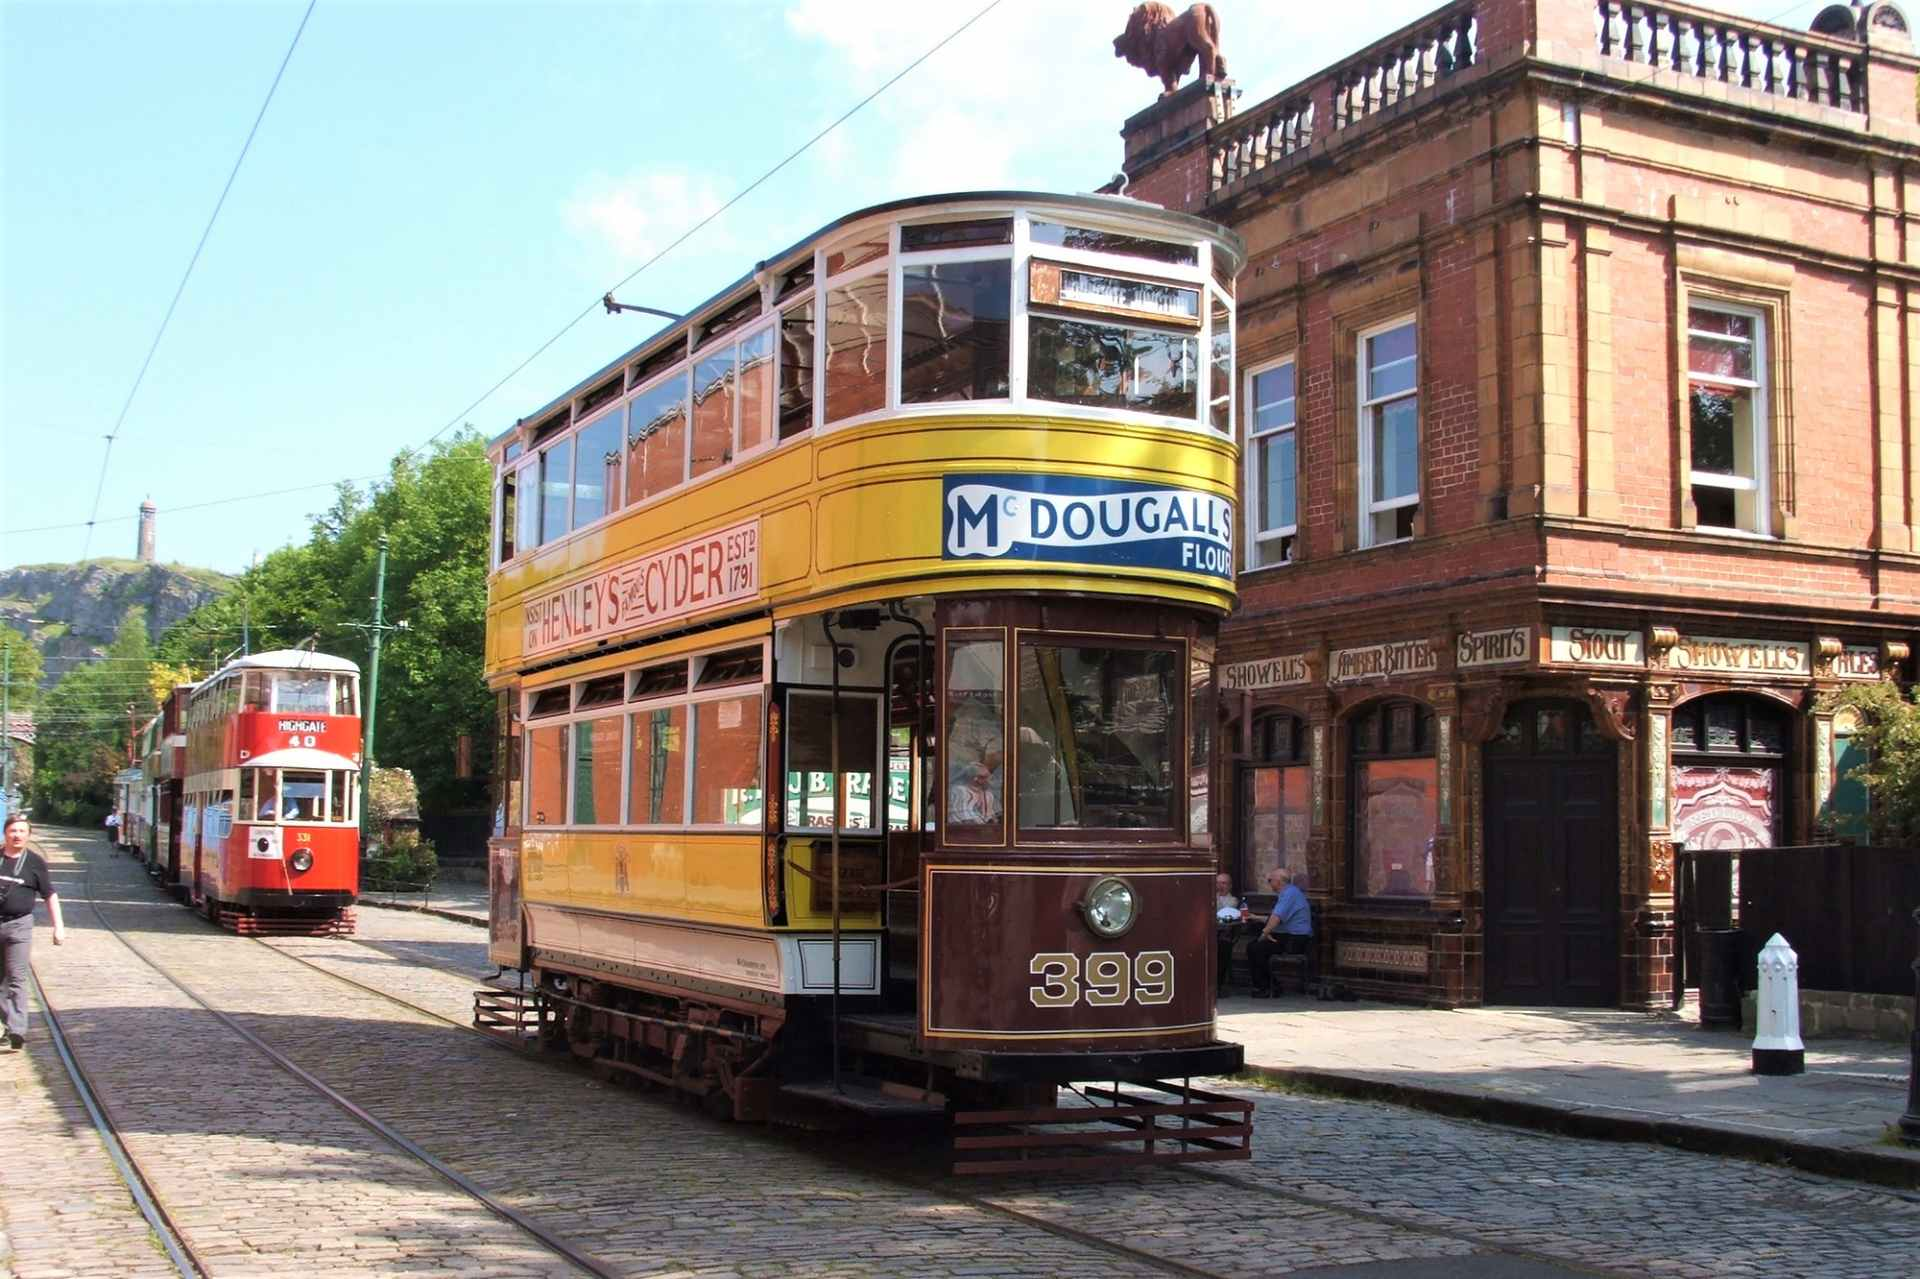 old-vintage-tram-outside-at-crich-tramway-village-museum